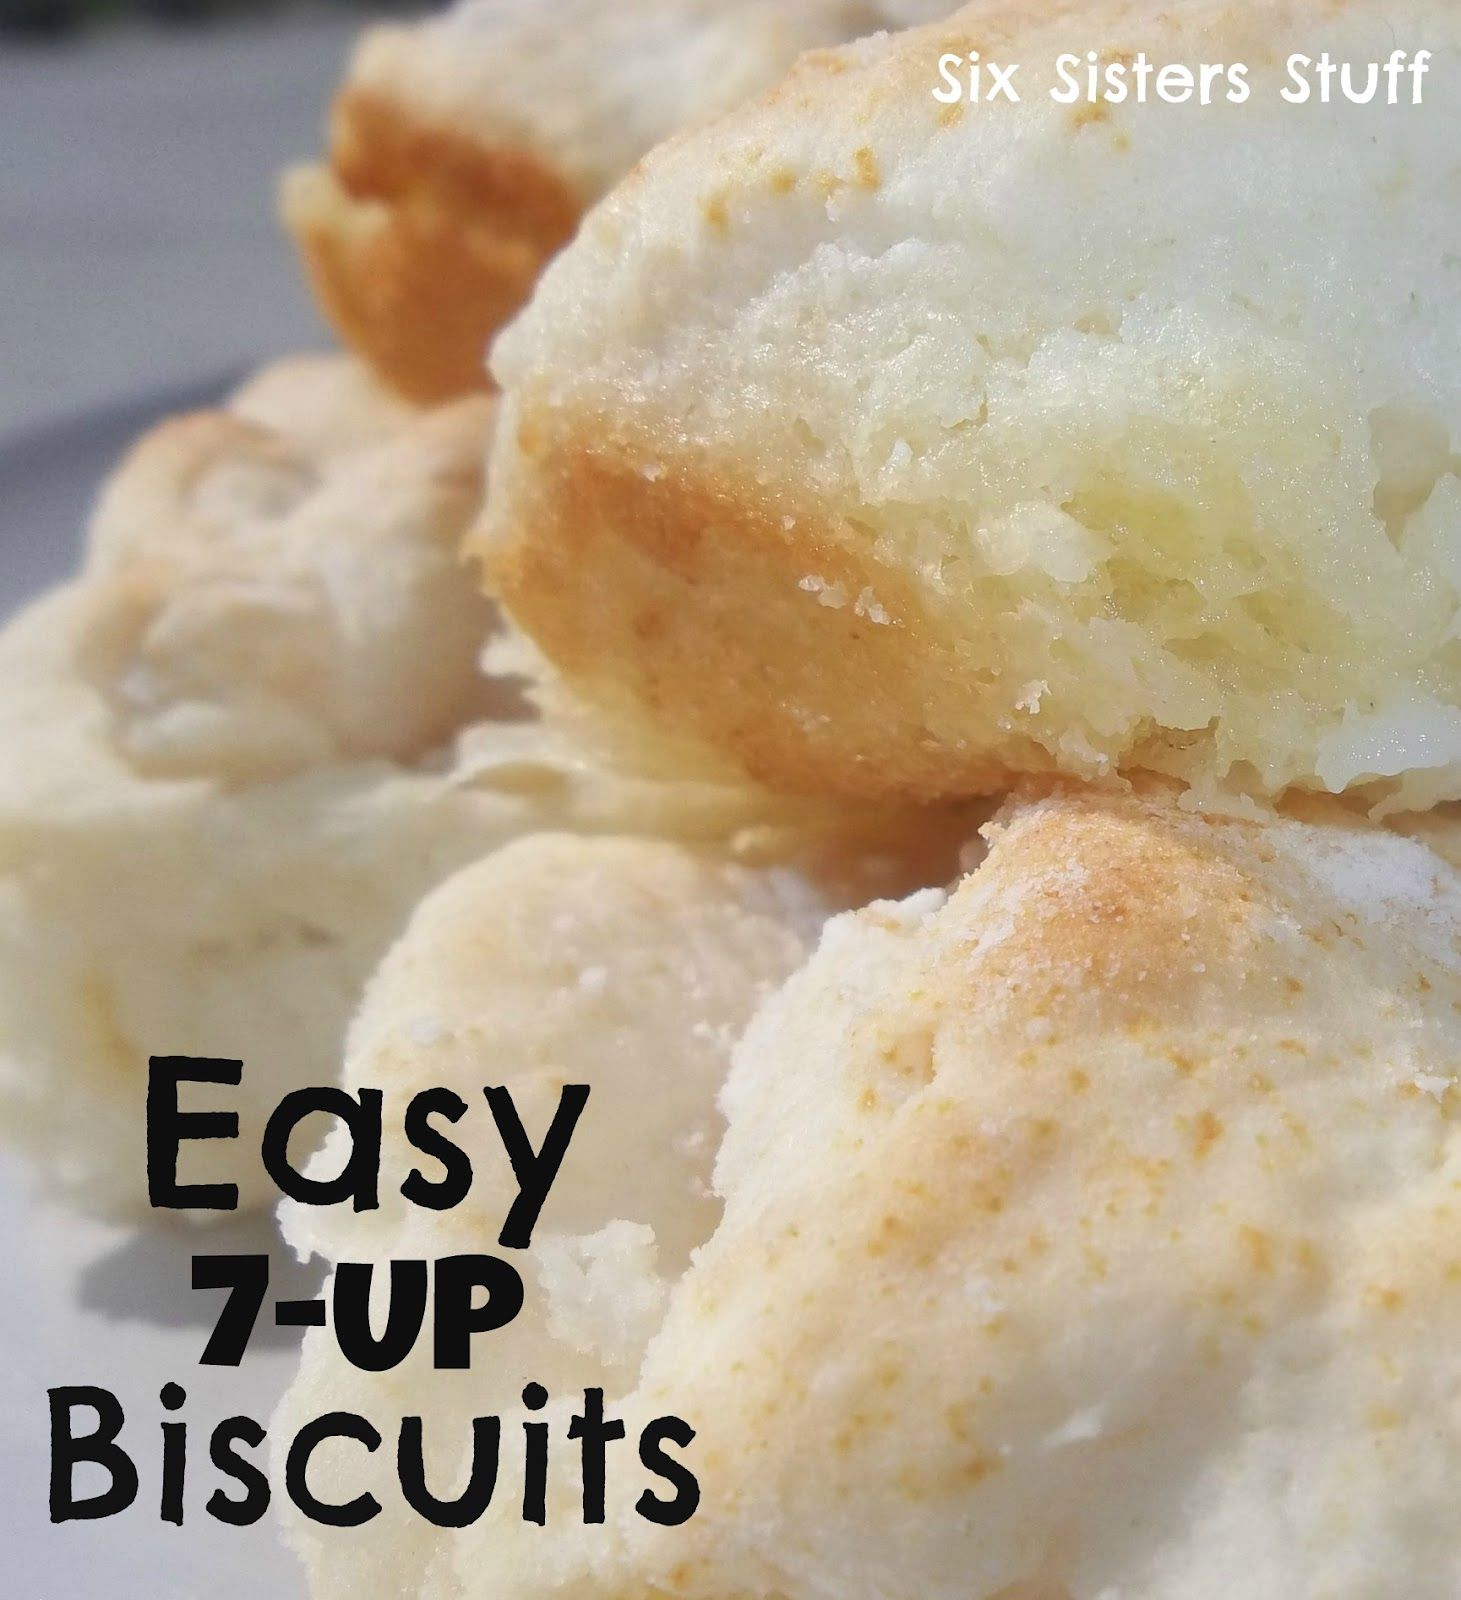 Six Sisters' Stuff: Easy 7 UP Biscuits